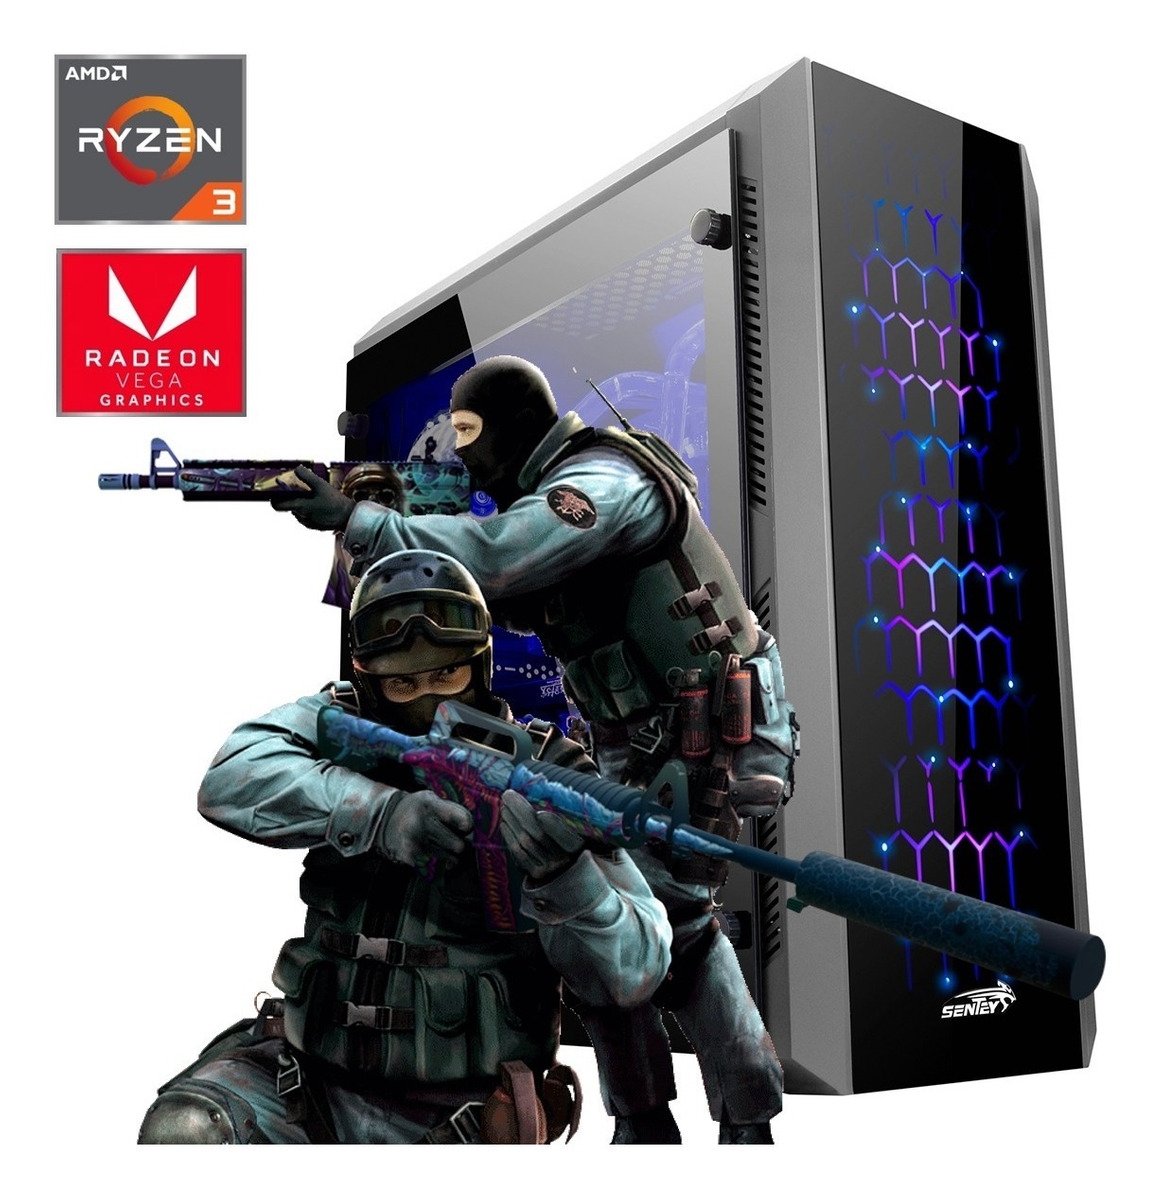 Pc Gamer Armada Amd Ryzen 3 Video Vega 8 Hdmi Fortnite Lol